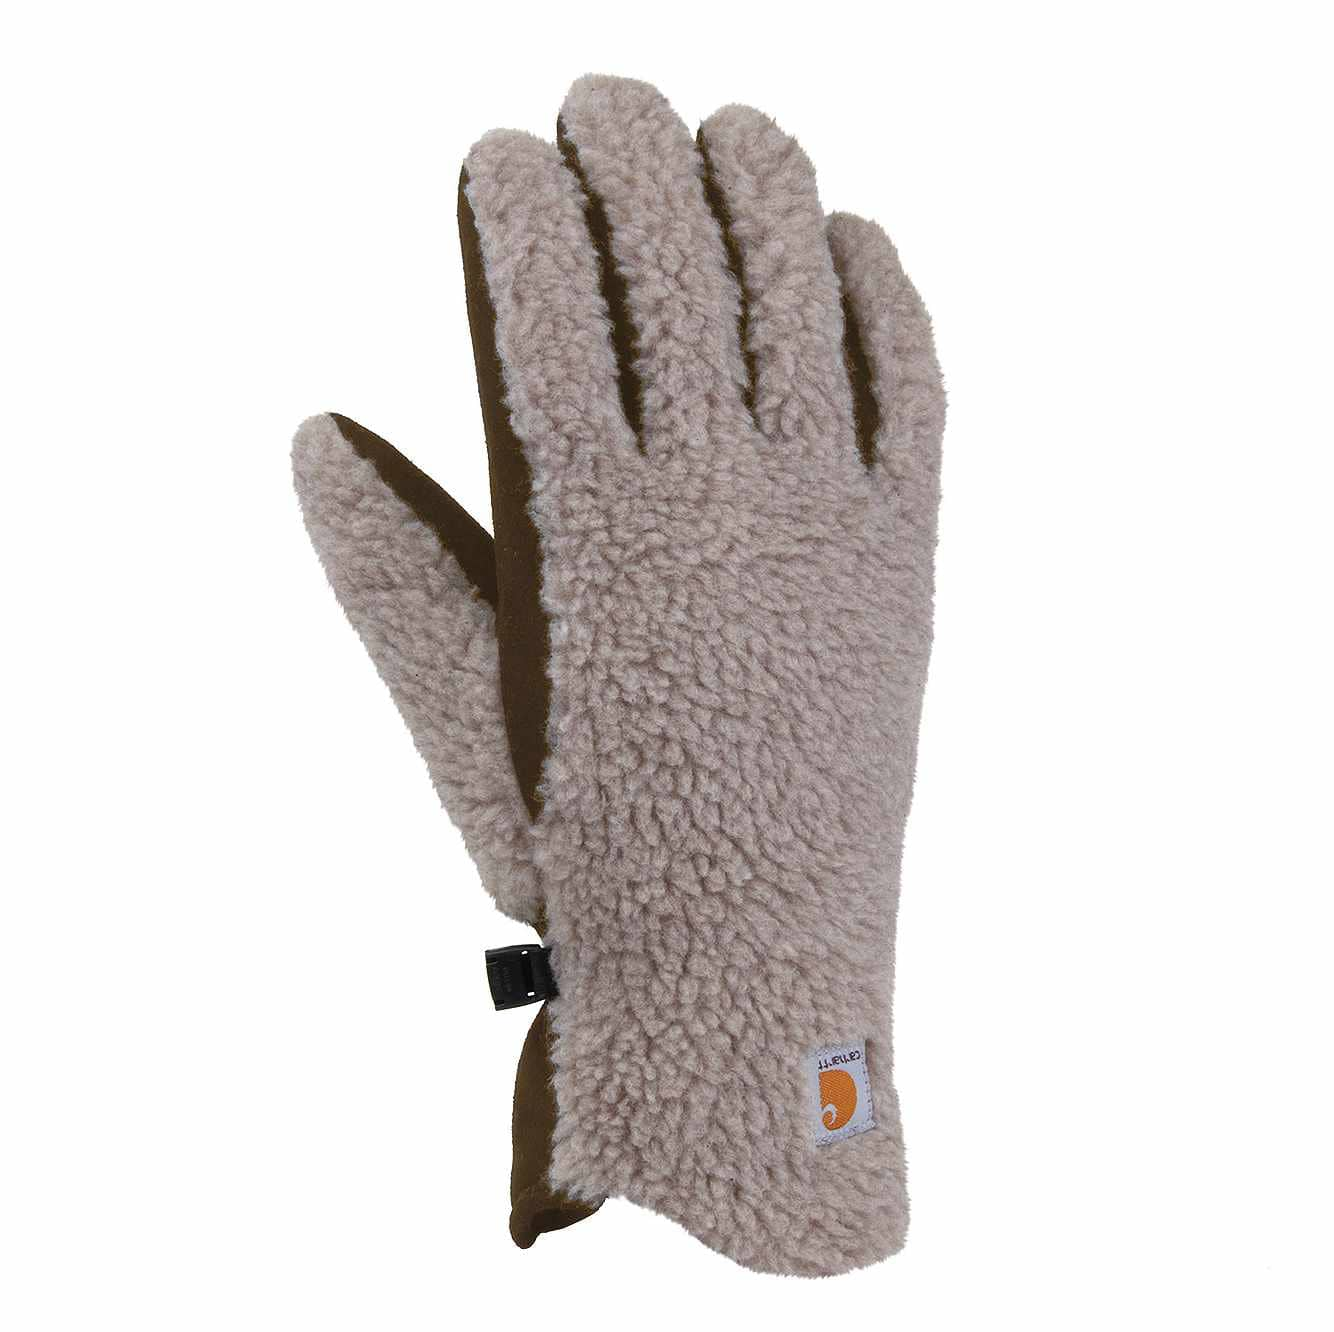 Picture of Sherpa Insulated Glove in Desert Sand